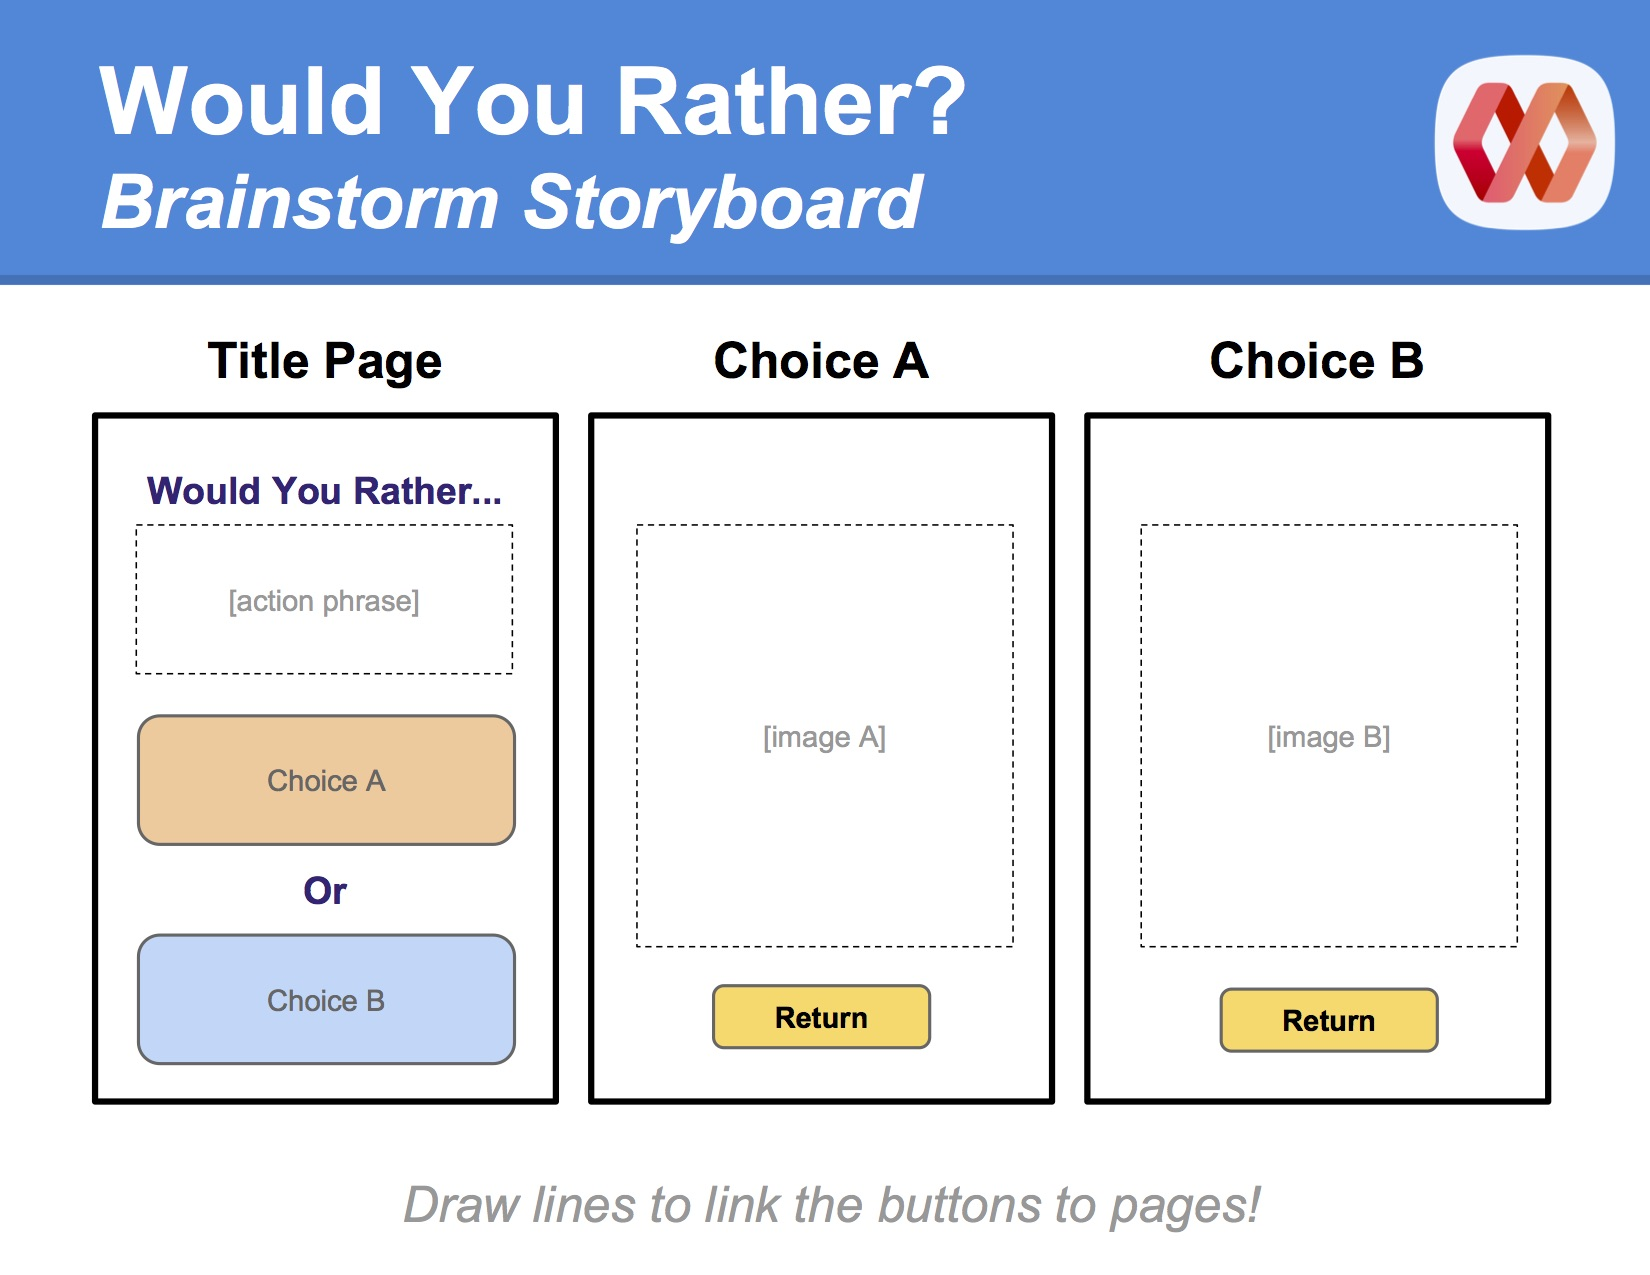 Would You Rather Storyboard Template